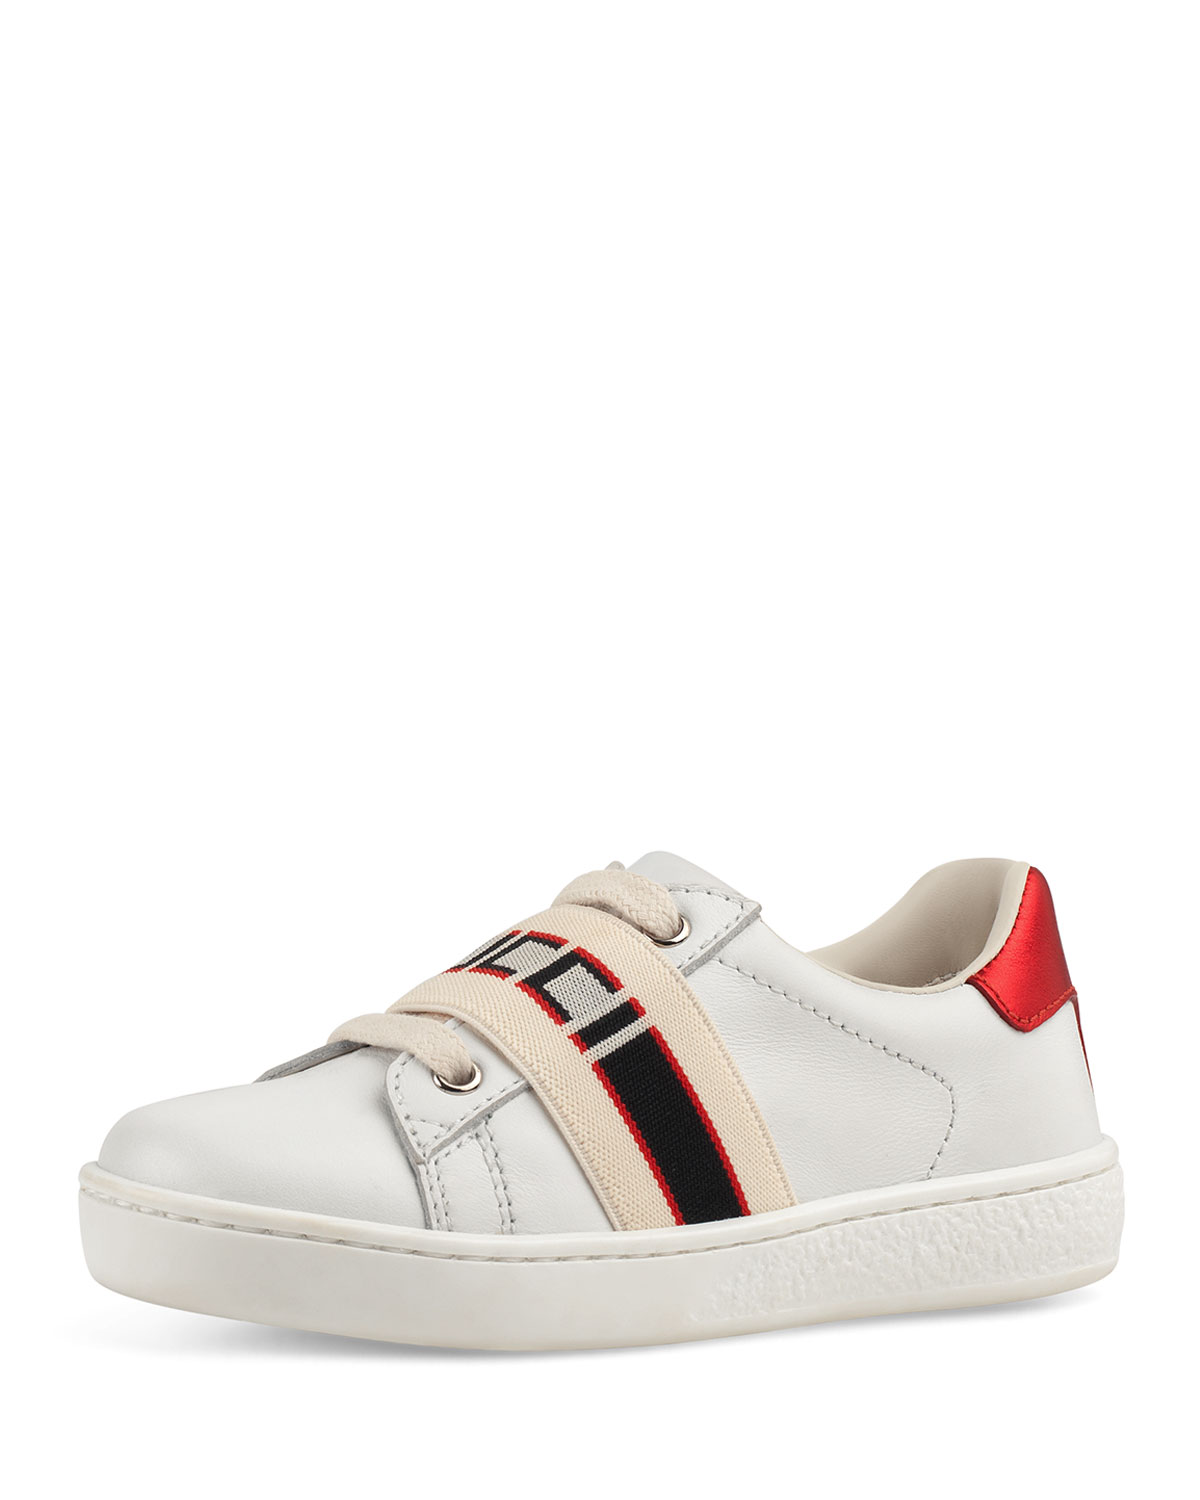 4a183bc4628 Gucci New Ace Gucci Band Leather Sneaker